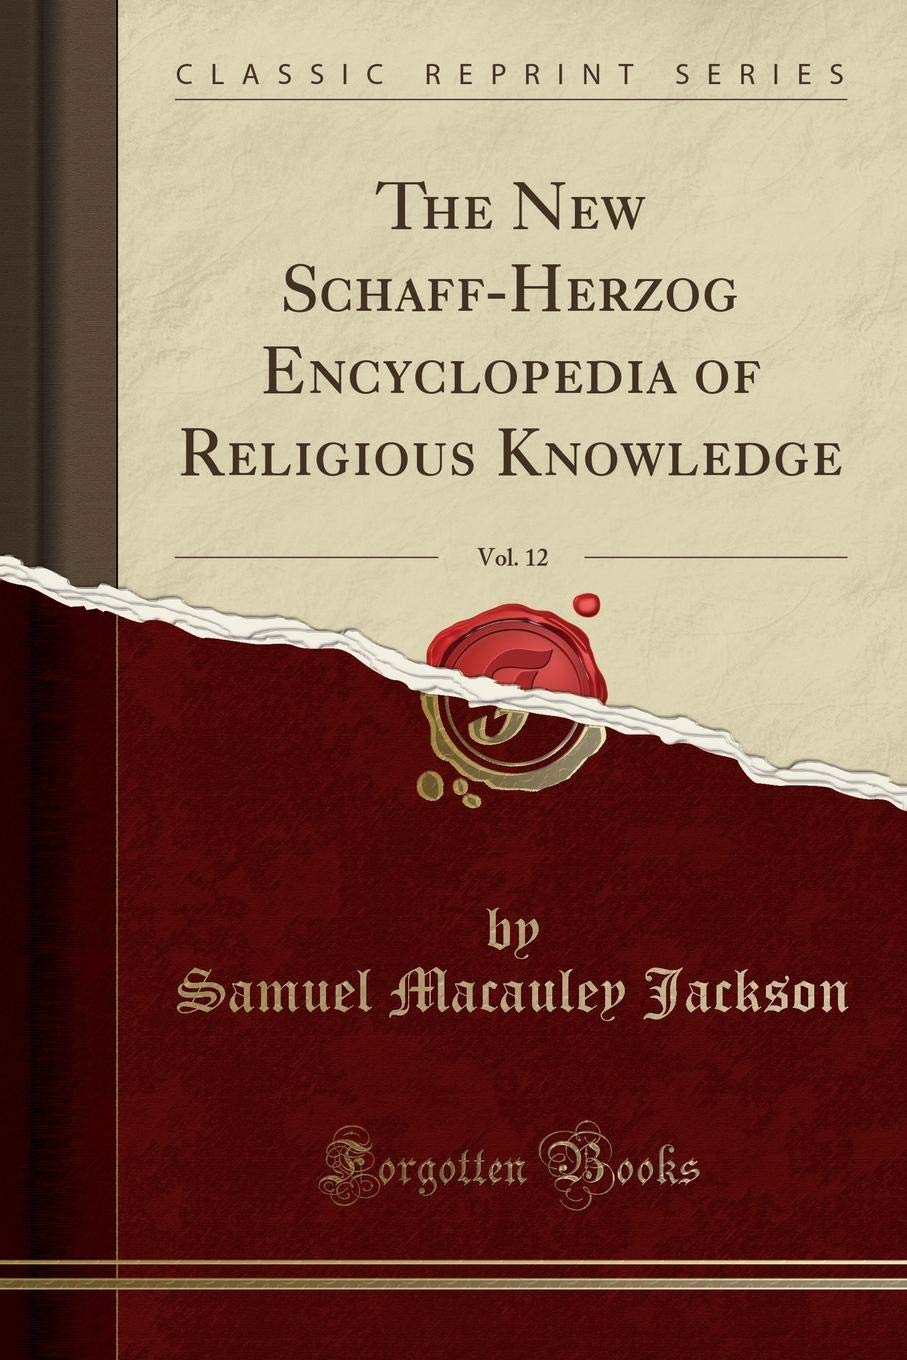 Read Online The New Schaff-Herzog Encyclopedia of Religious Knowledge, Vol. 12 (Classic Reprint) PDF